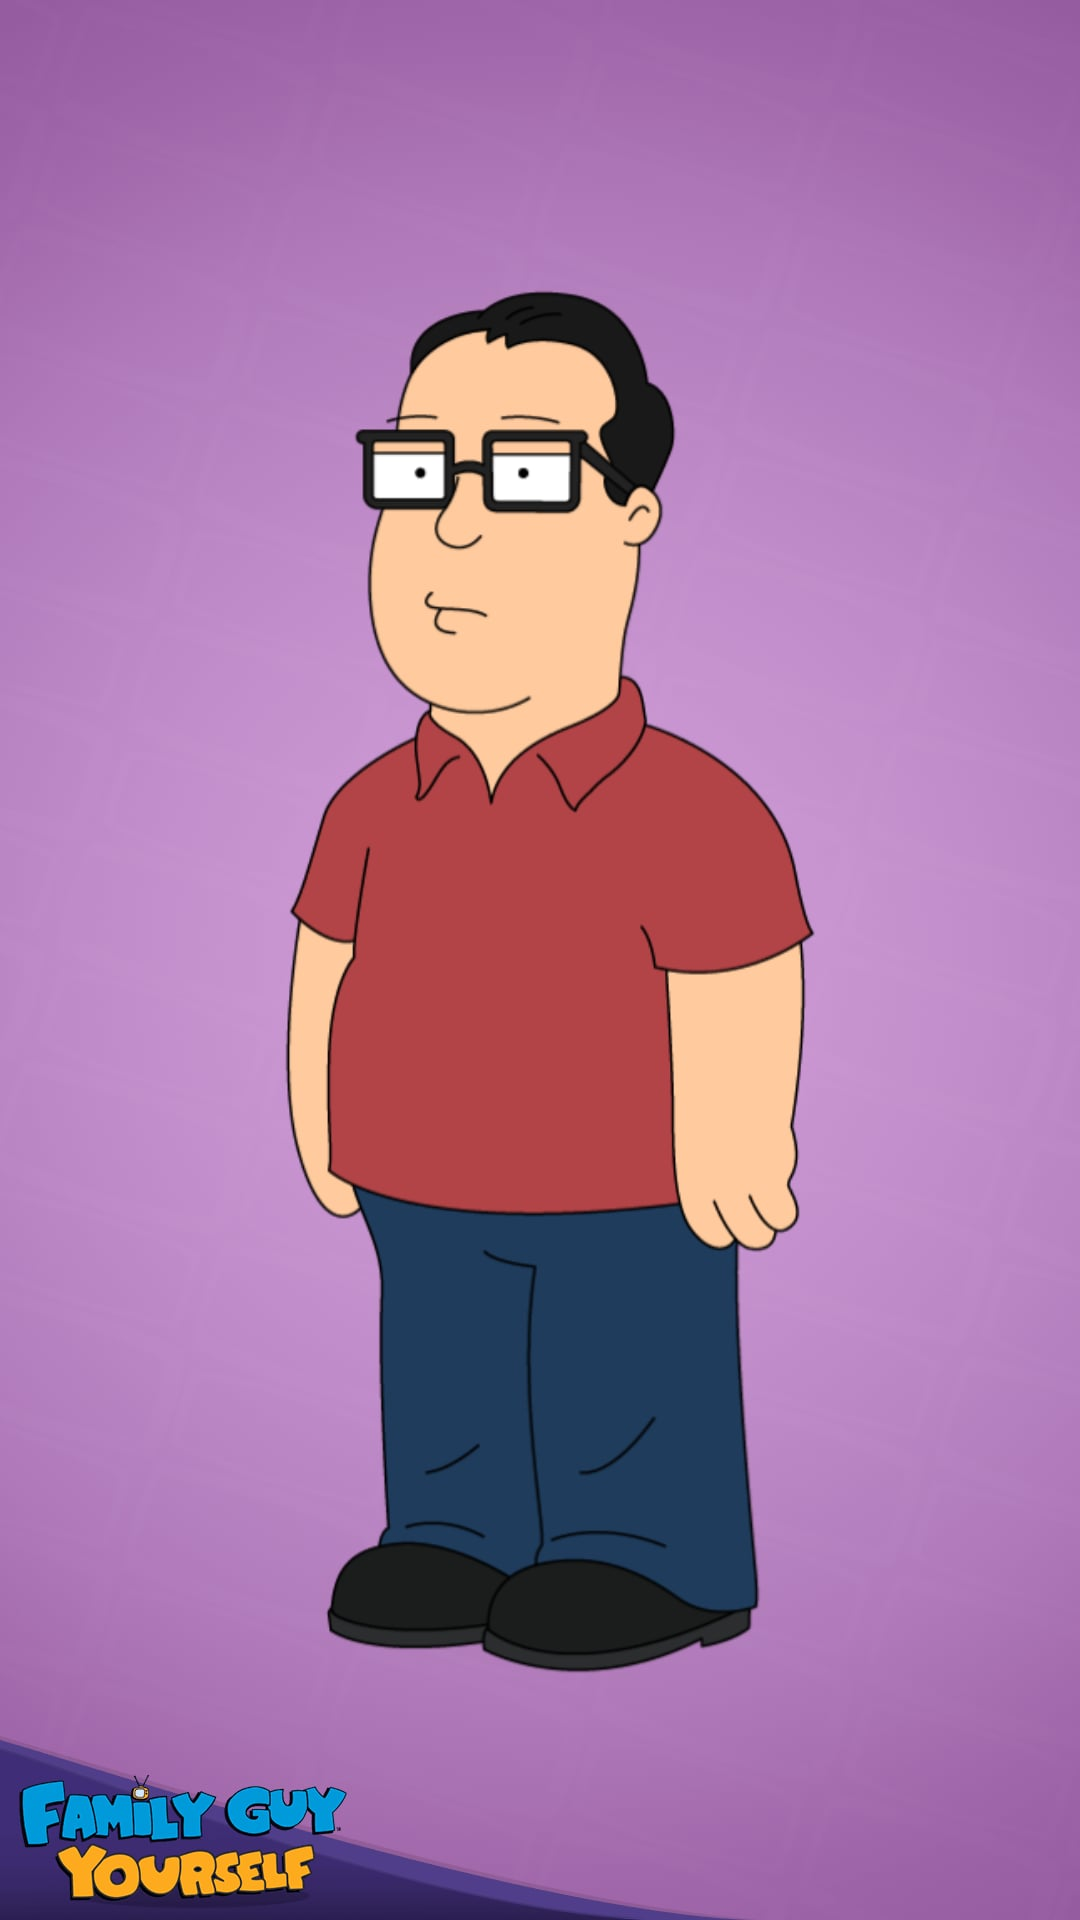 Family Guy Yourself (1)